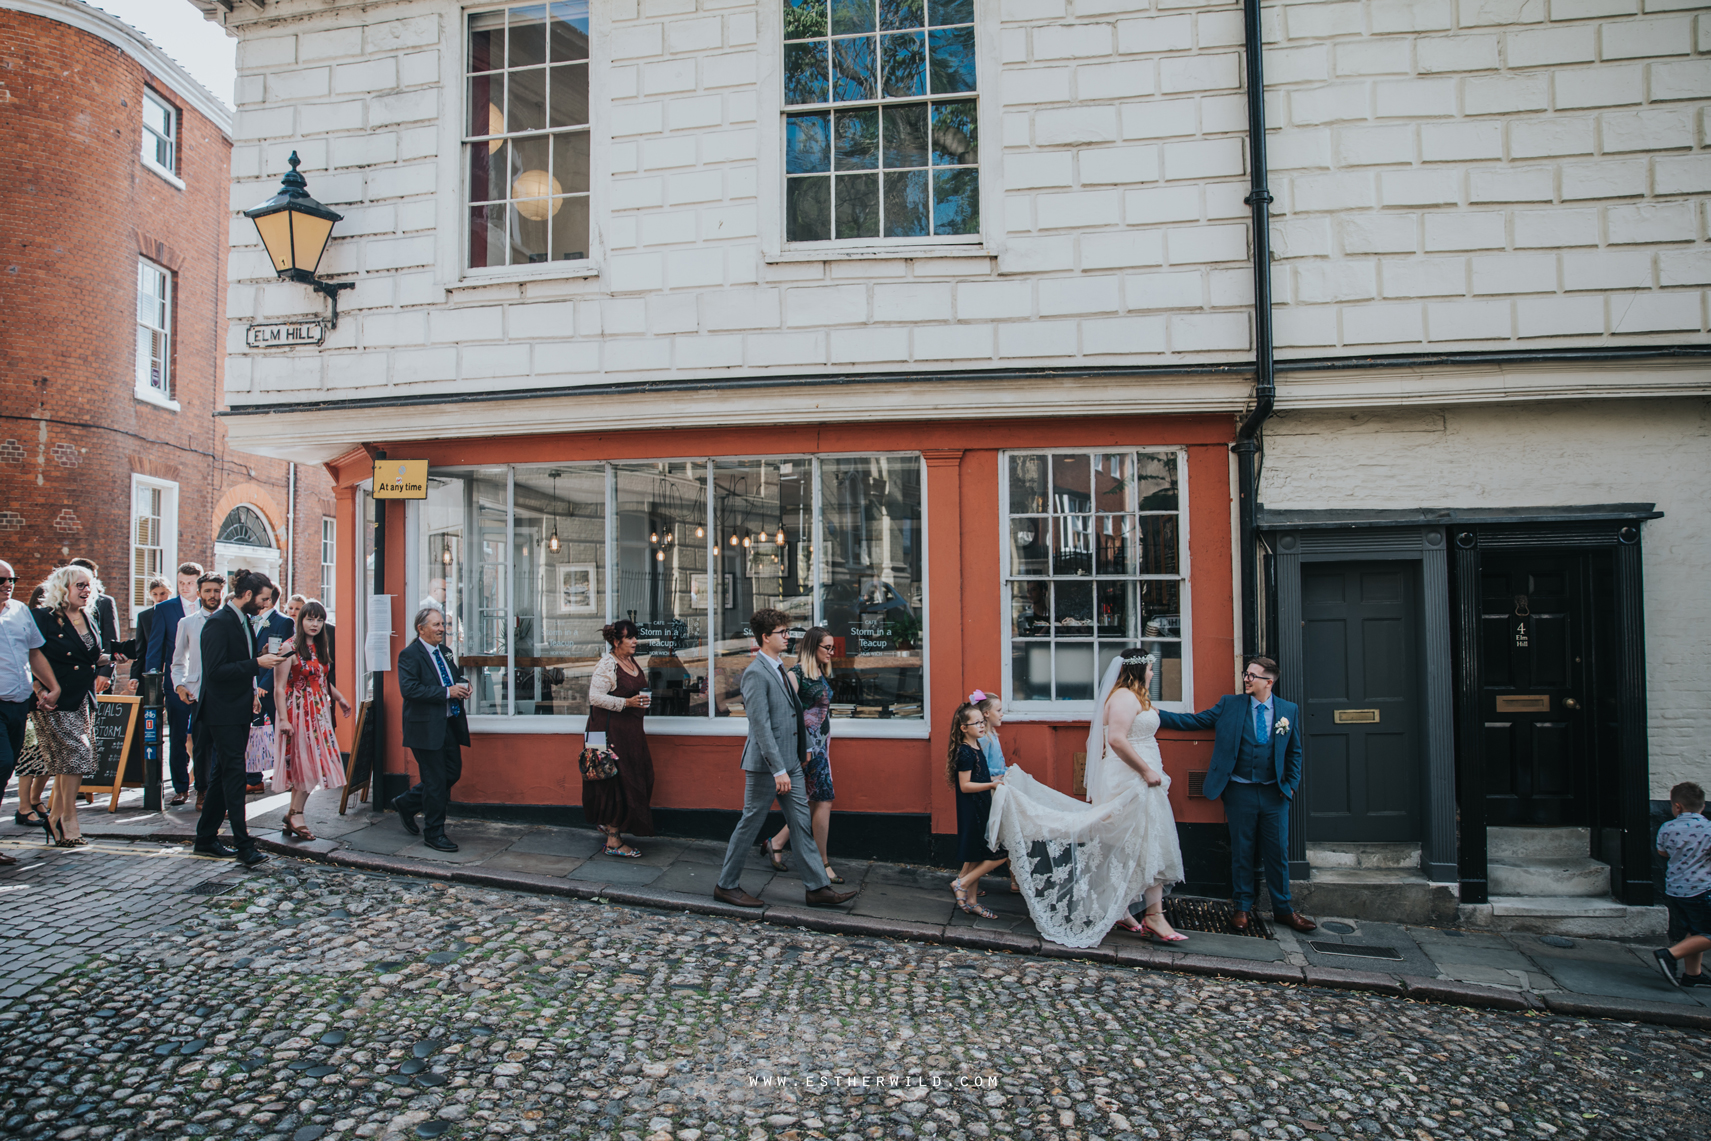 Norwich_Castle_Arcade_Grosvenor_Chip_Birdcage_Cathedral_Cloisters_Refectory_Wedding_Photography_Esther_Wild_Photographer_Norfolk_Kings_Lynn_3R8A1780.jpg